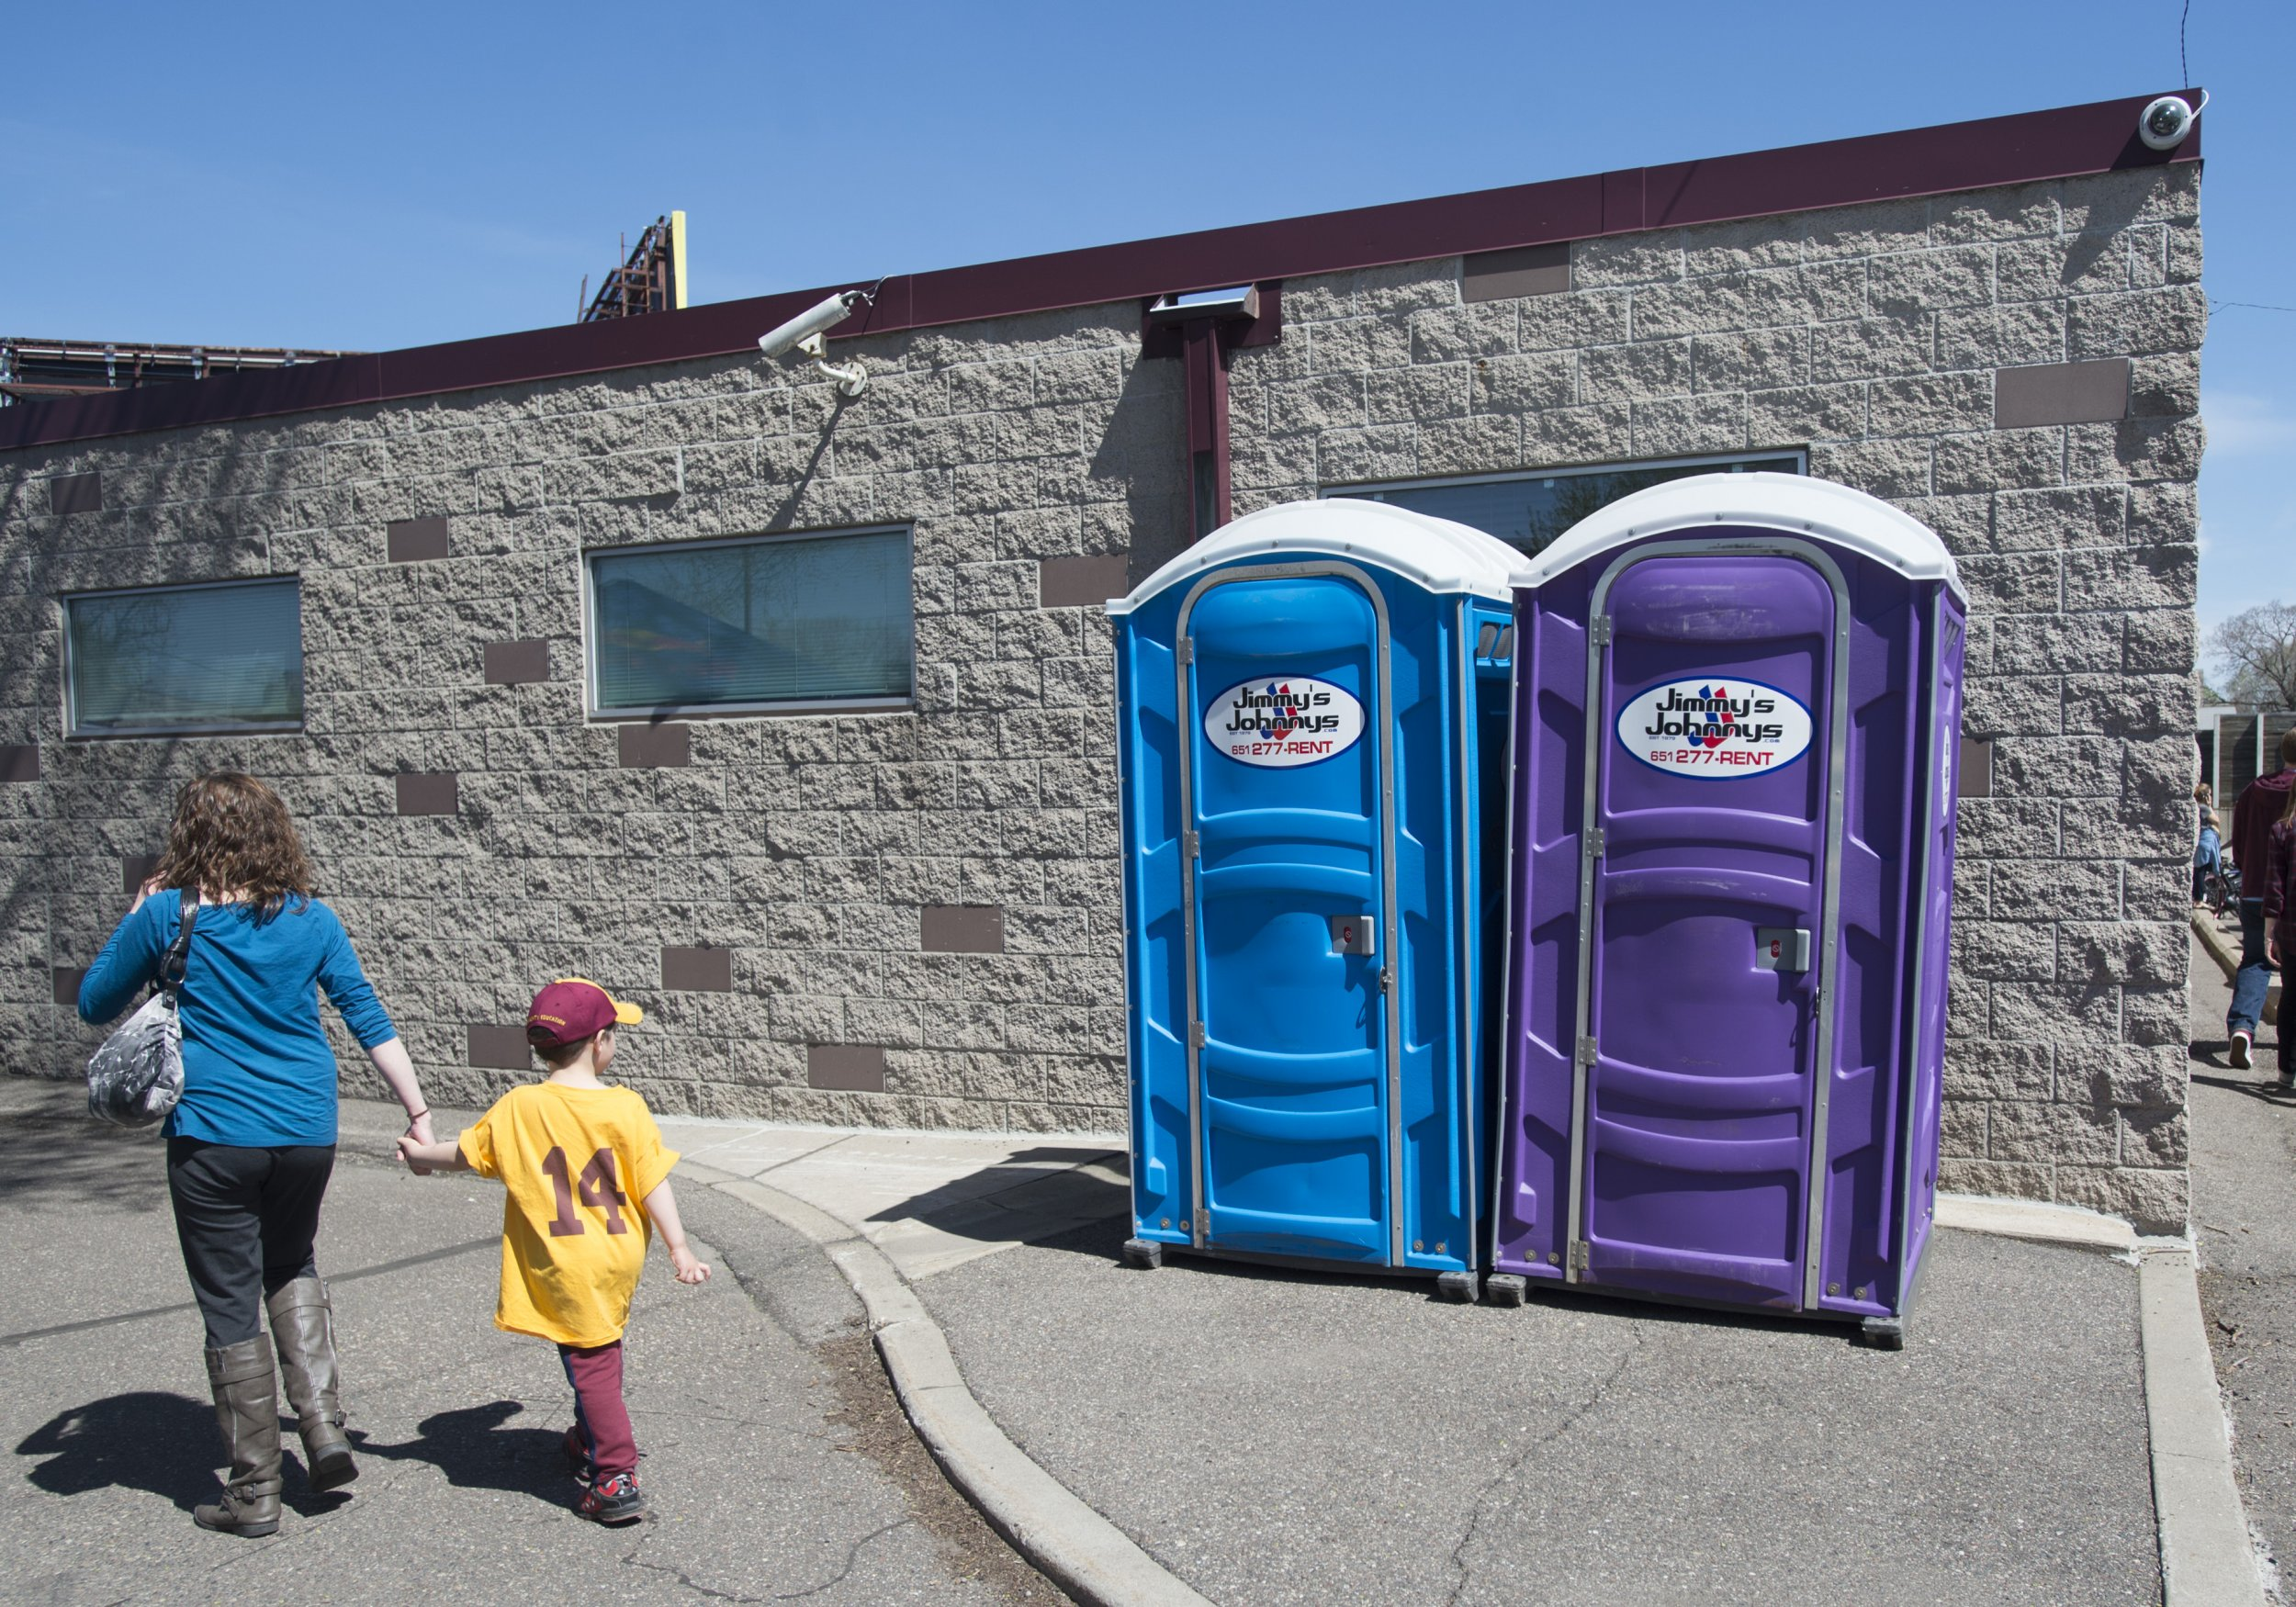 09_17_Portable Restrooms